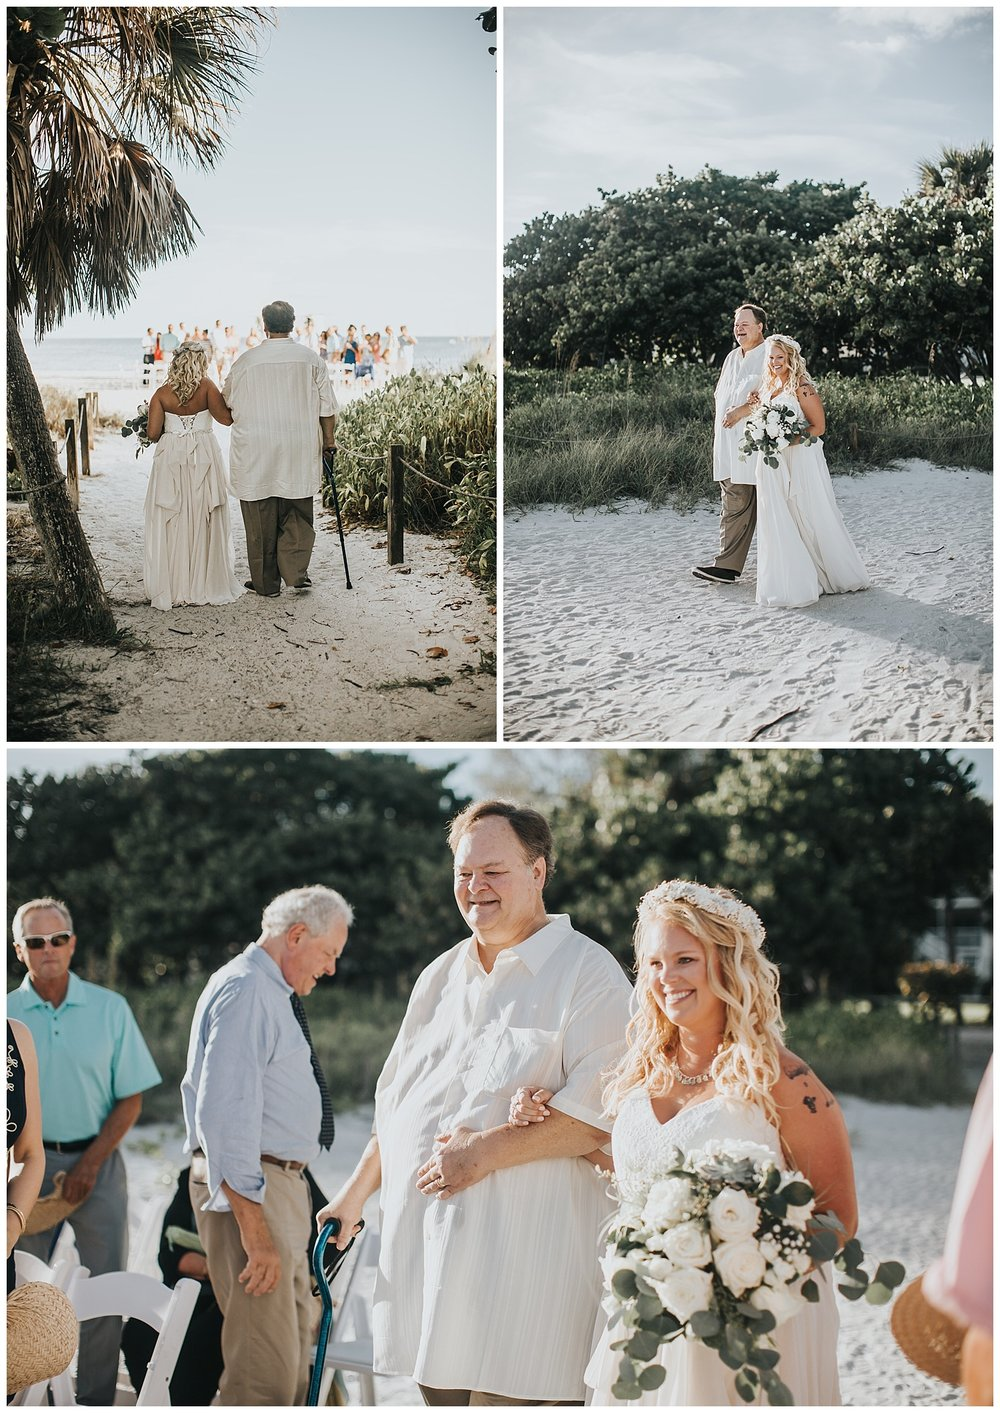 Kate+Blake_Sanibel_Island_Florida_Wedding_Varsity_Theatre_Russell_Heeter_Photography_0039.jpg